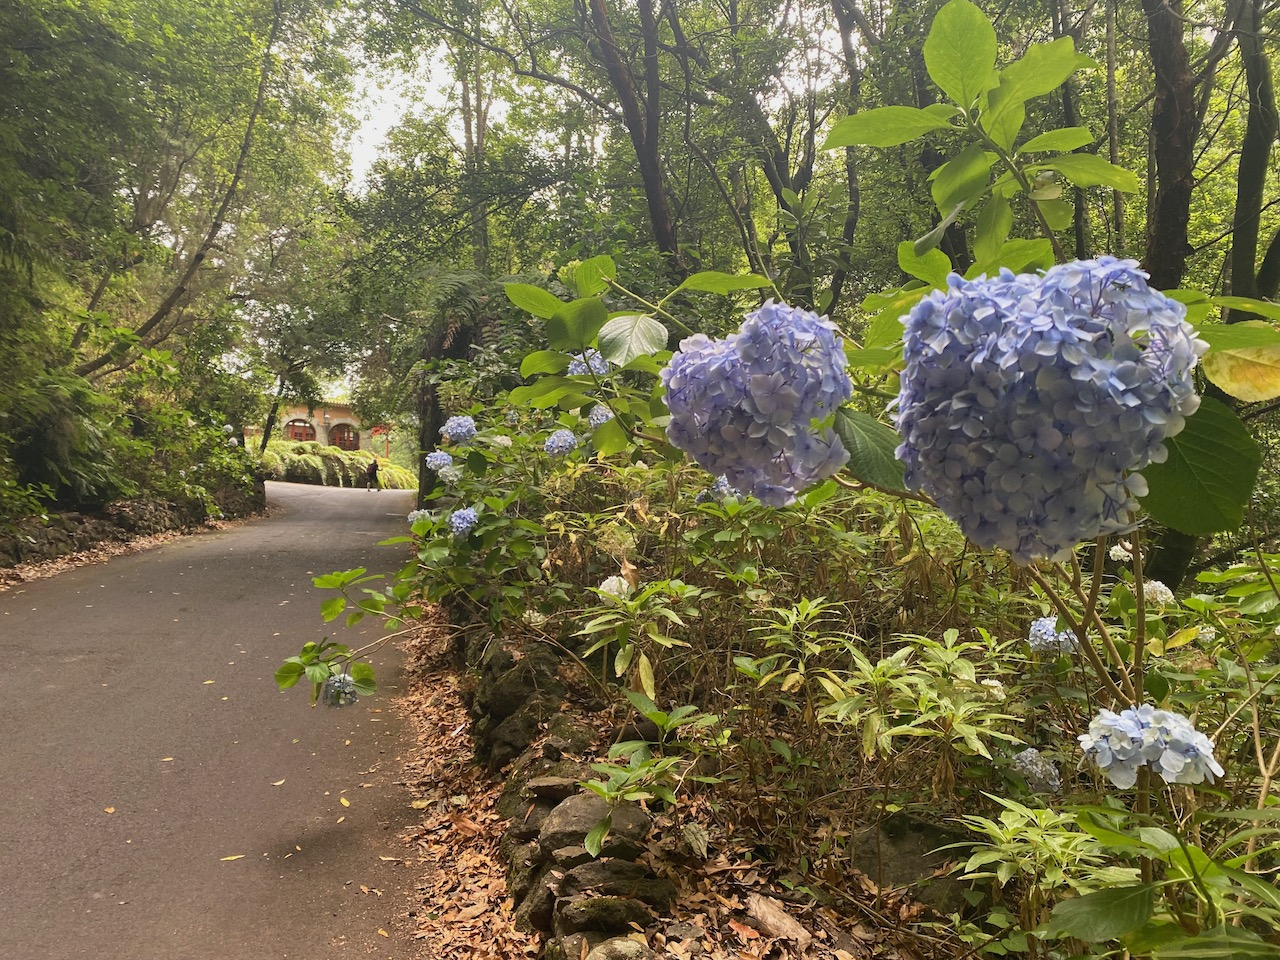 Beautiful hydrangea / hortensia that are growing wild in this area